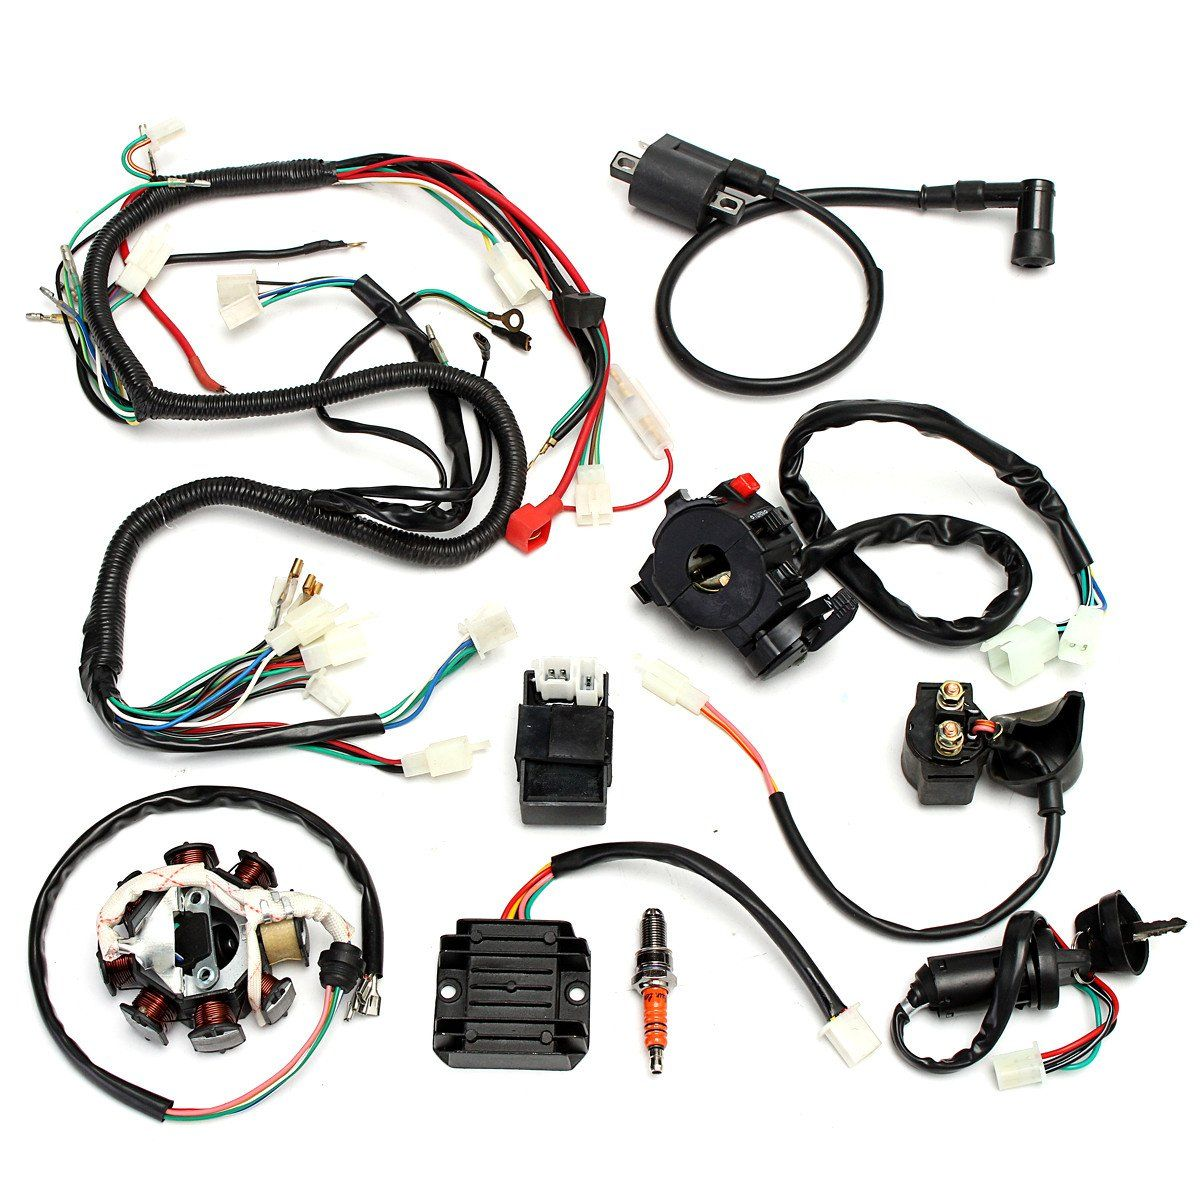 coolster 110cc atv parts furthermore 110cc pit bike engine diagram along with coolster 125cc atv wiring diagram and razor e300 stator 150cc tao tao  [ 1200 x 1200 Pixel ]